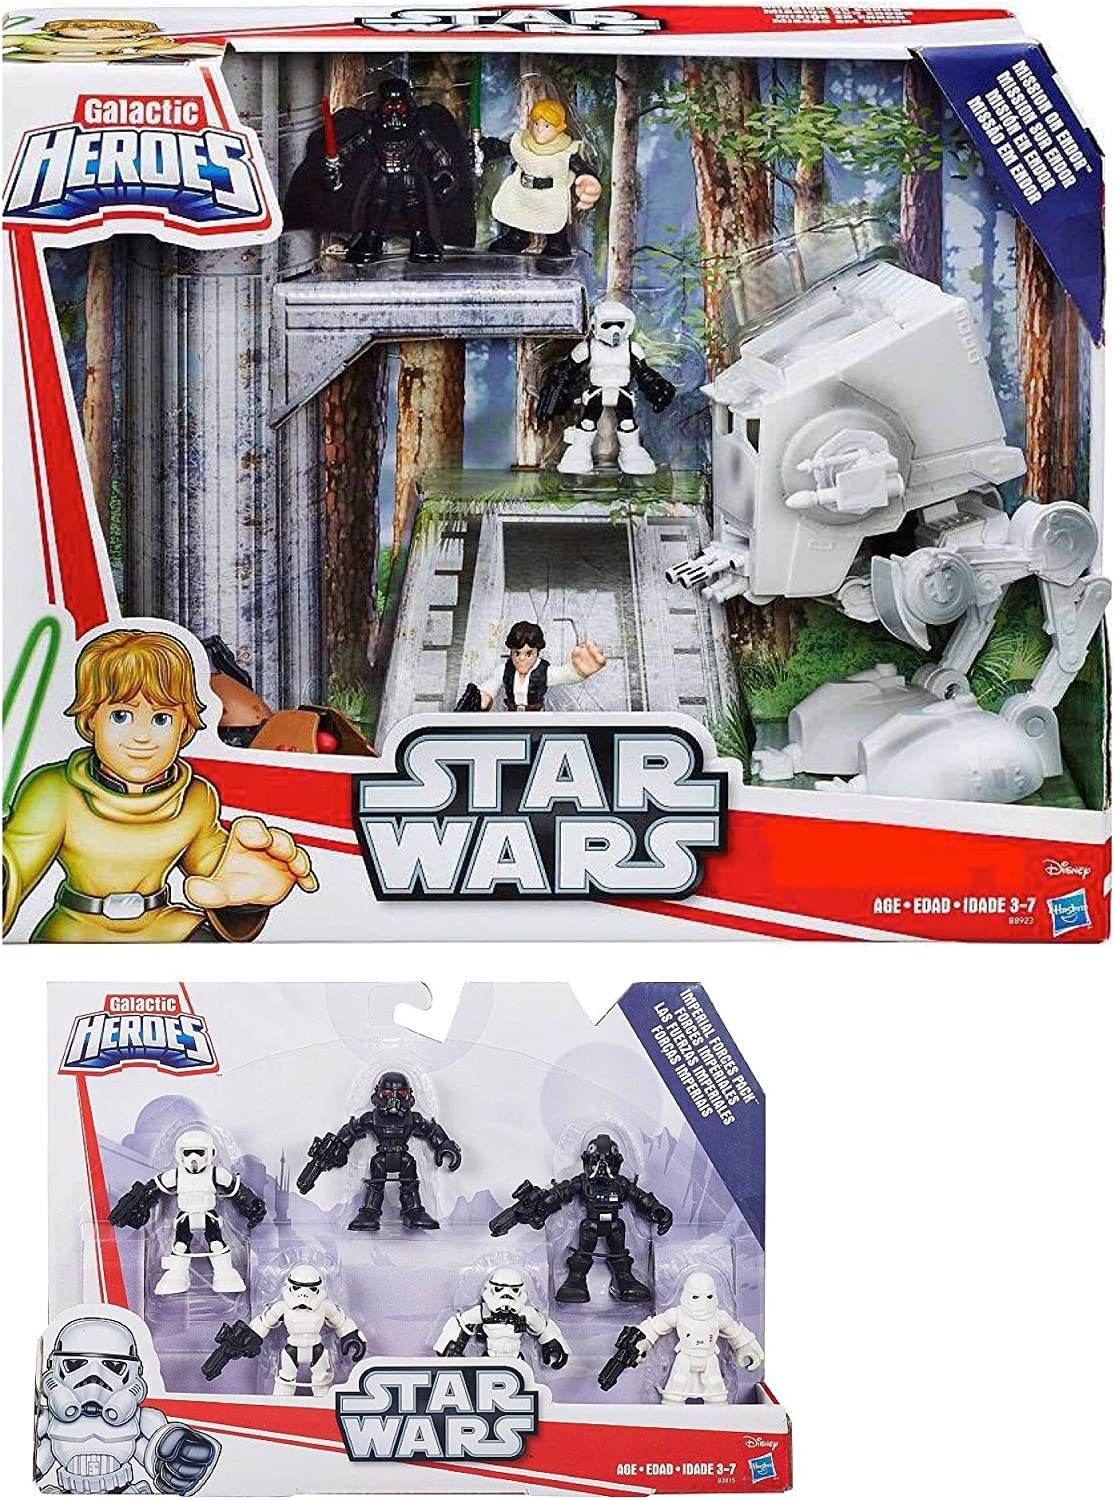 Star Wars Galactic Heroes Mission on Endor & Galactic Heroes Imperial Forces Pack